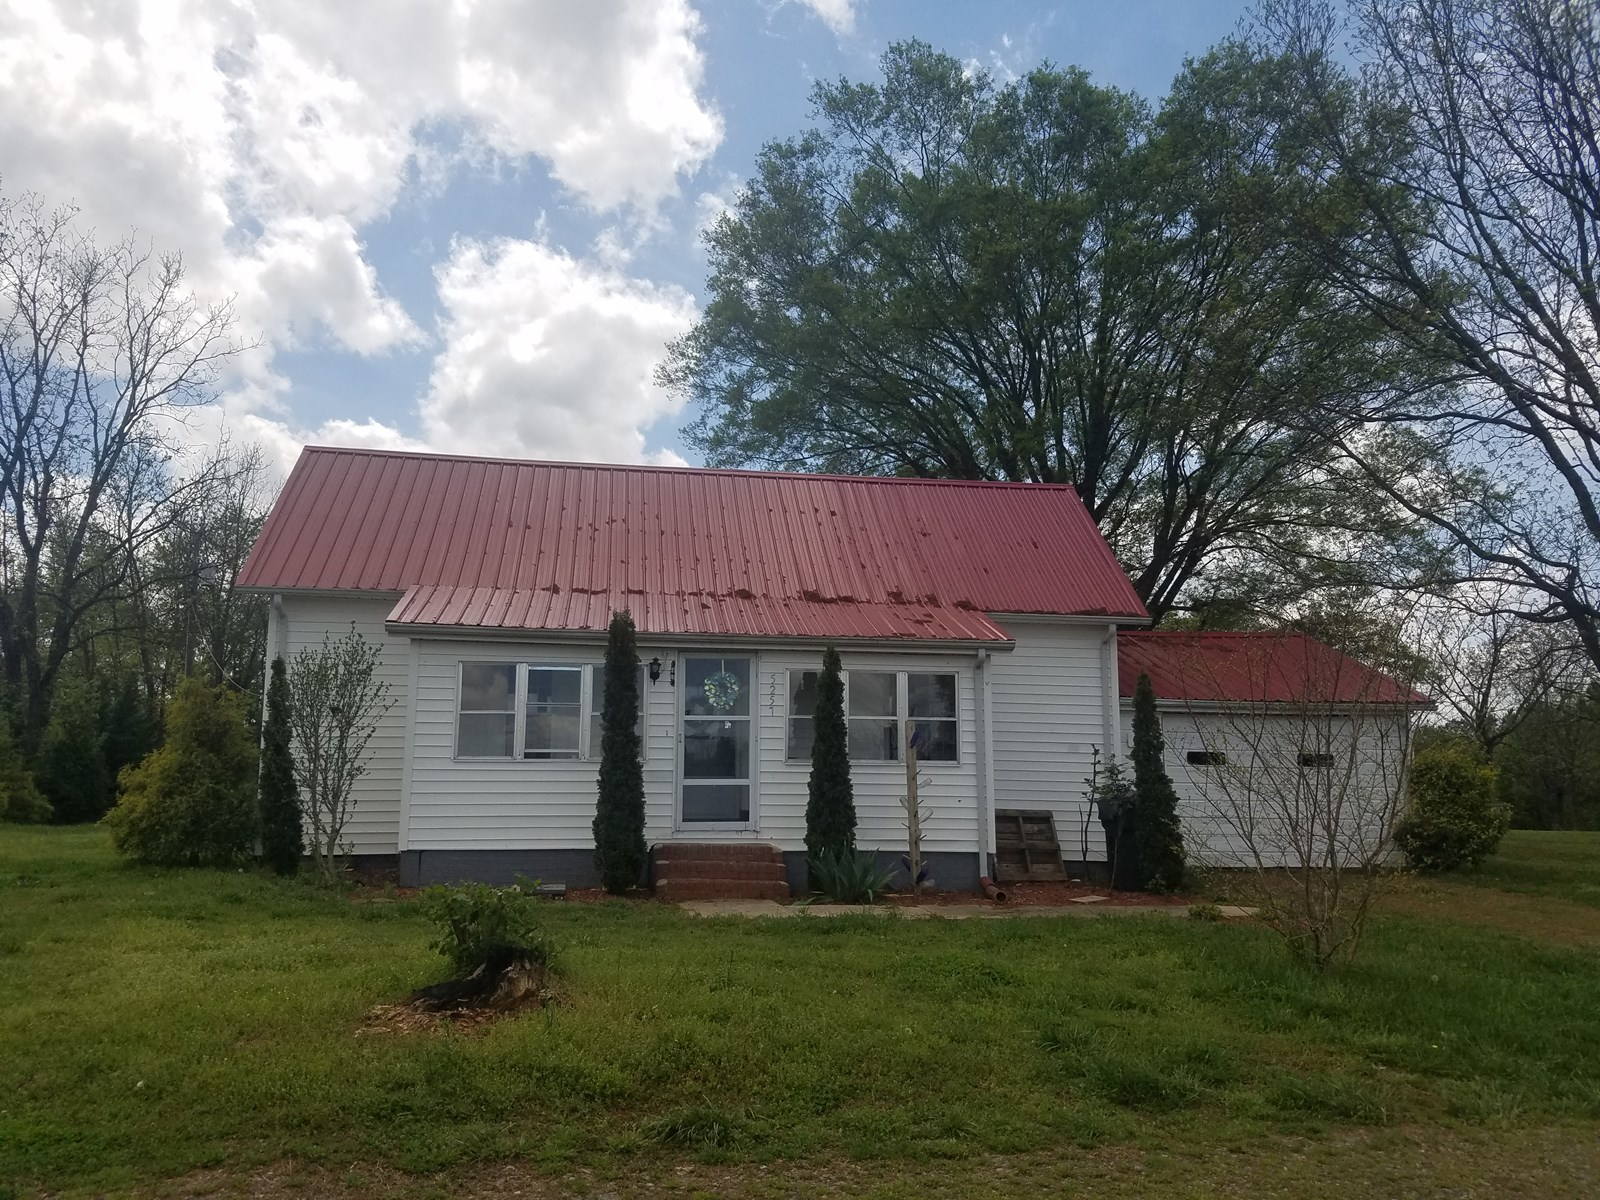 Stony Point, NC    - Country Home -Zoned Business also